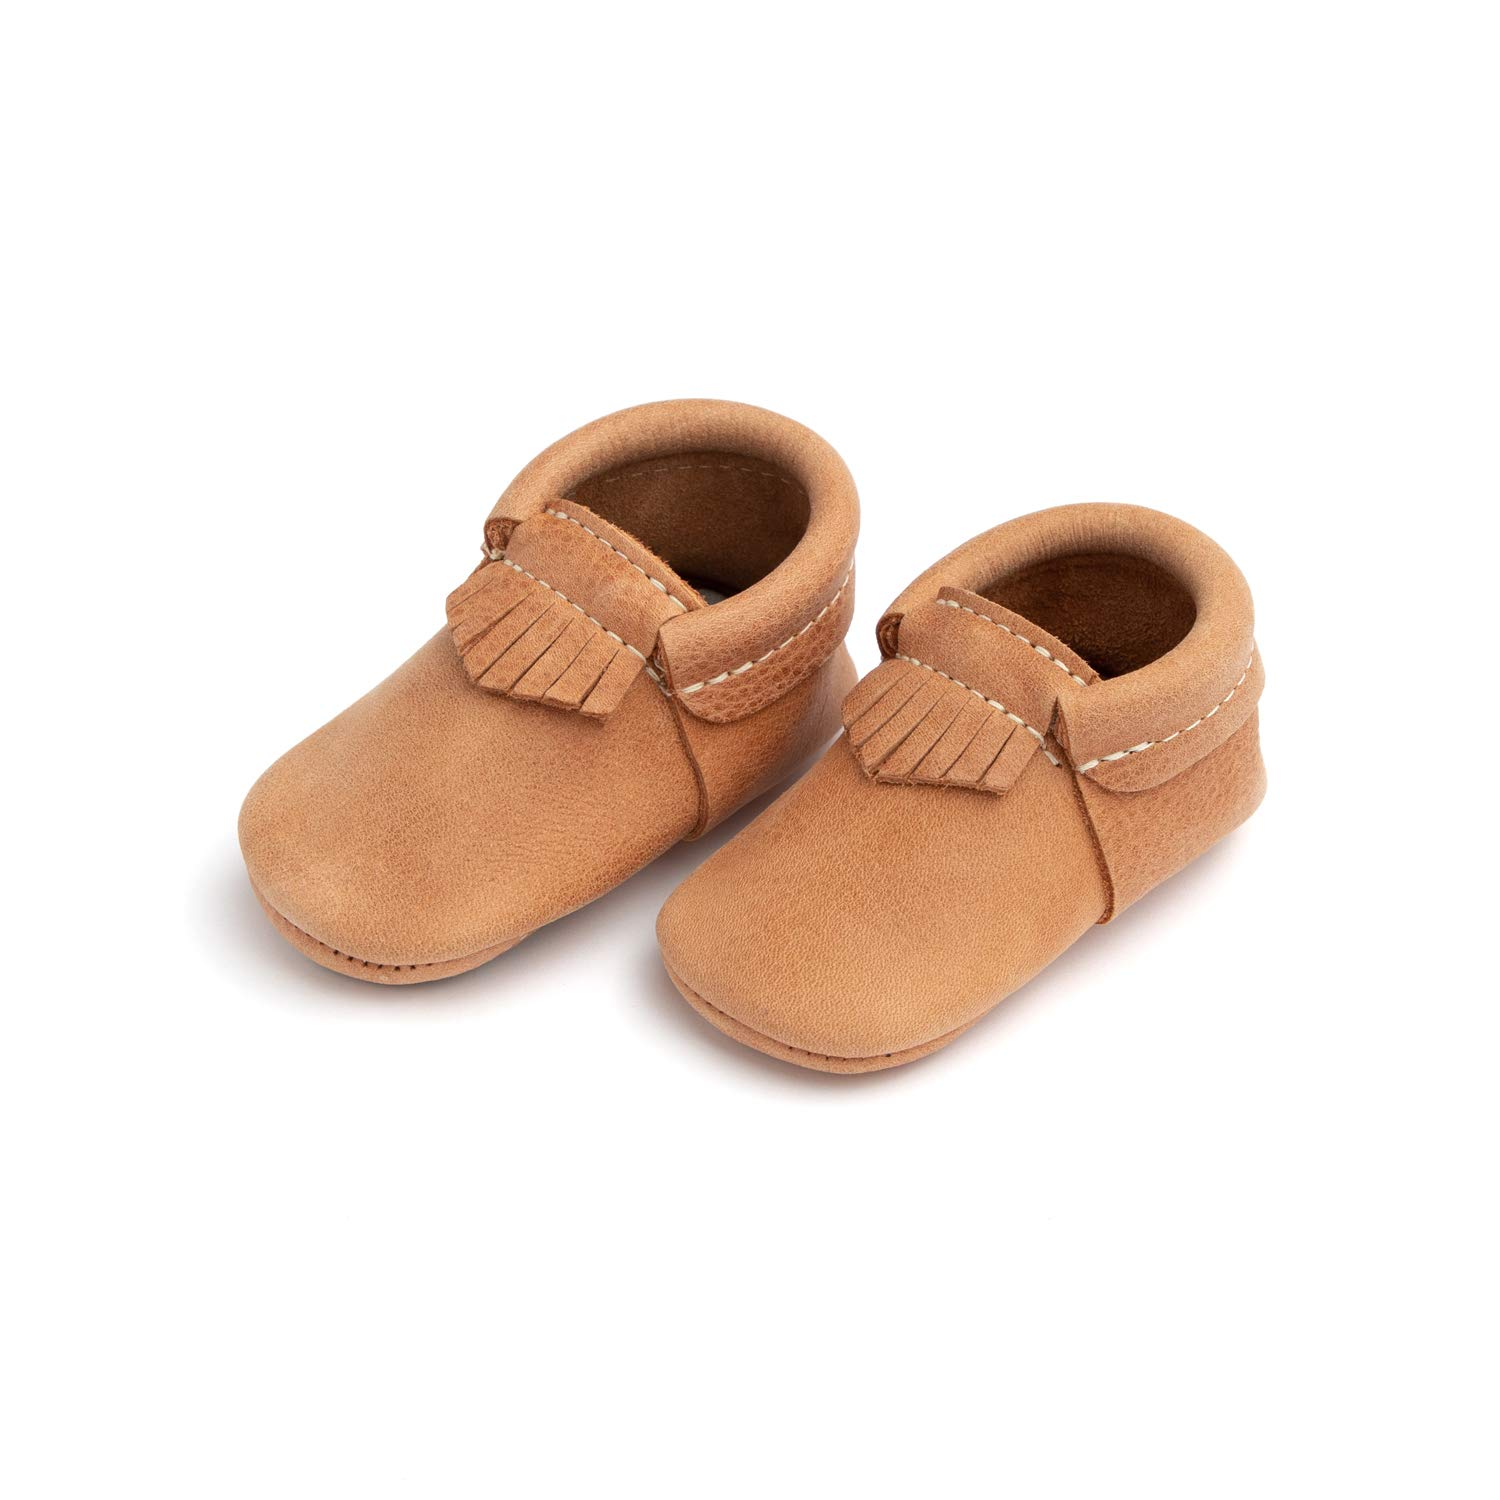 Freshly Picked - Rubber Mini Sole Leather City Moccasins - Toddler Girl Boy Shoes - Size 3 Zion Tan by Freshly Picked